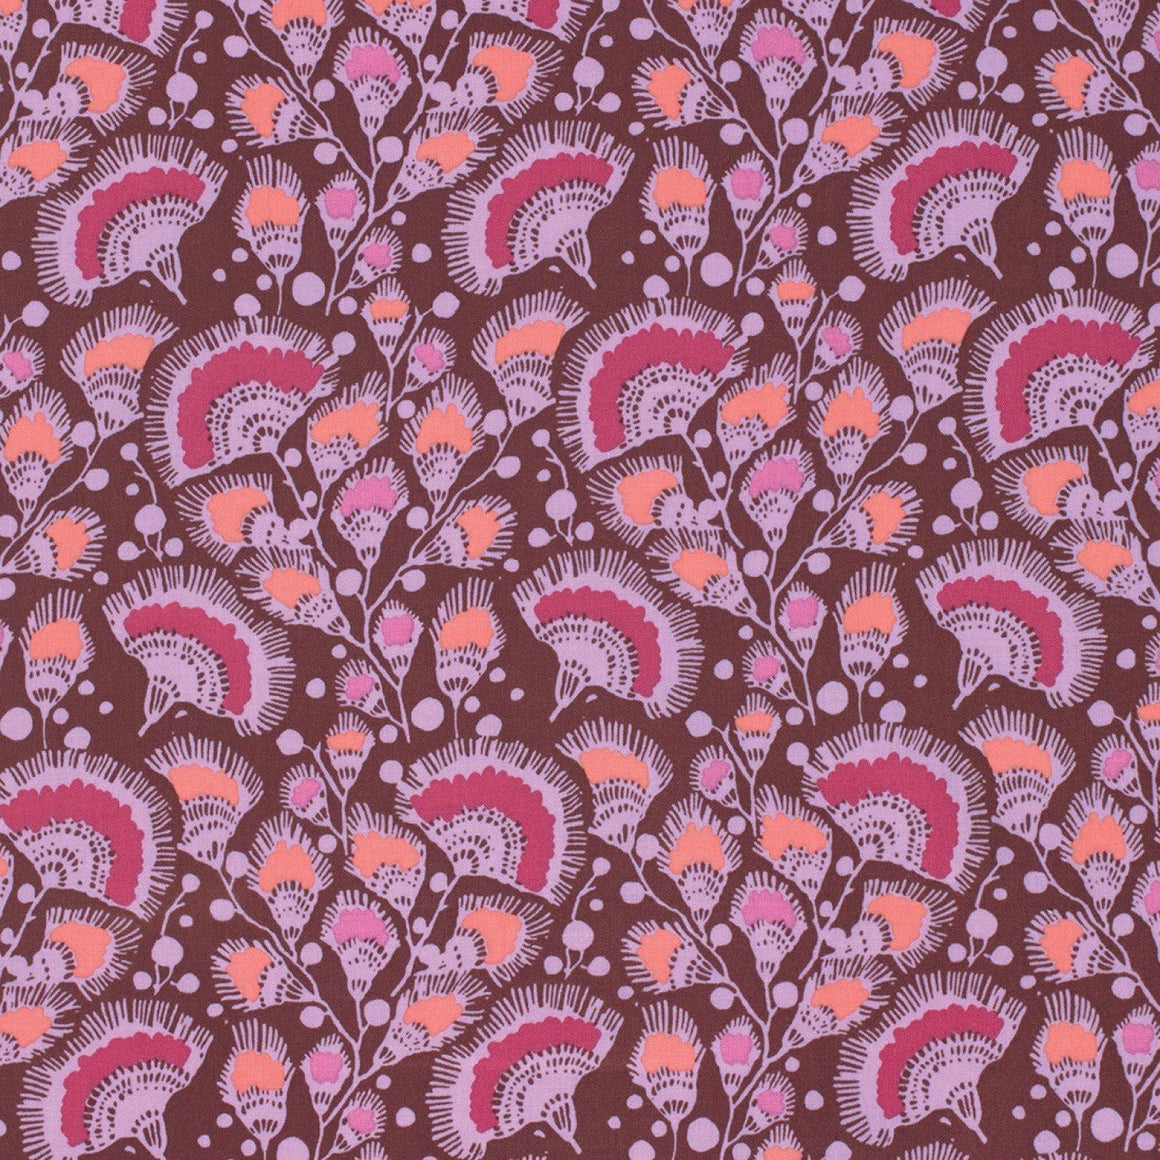 Purple Coral and Plum Feather Fans Cotton Fabric, Bright Heart By Amy Butler for Free Spirit, Feather Fans in Plum, 1 yard